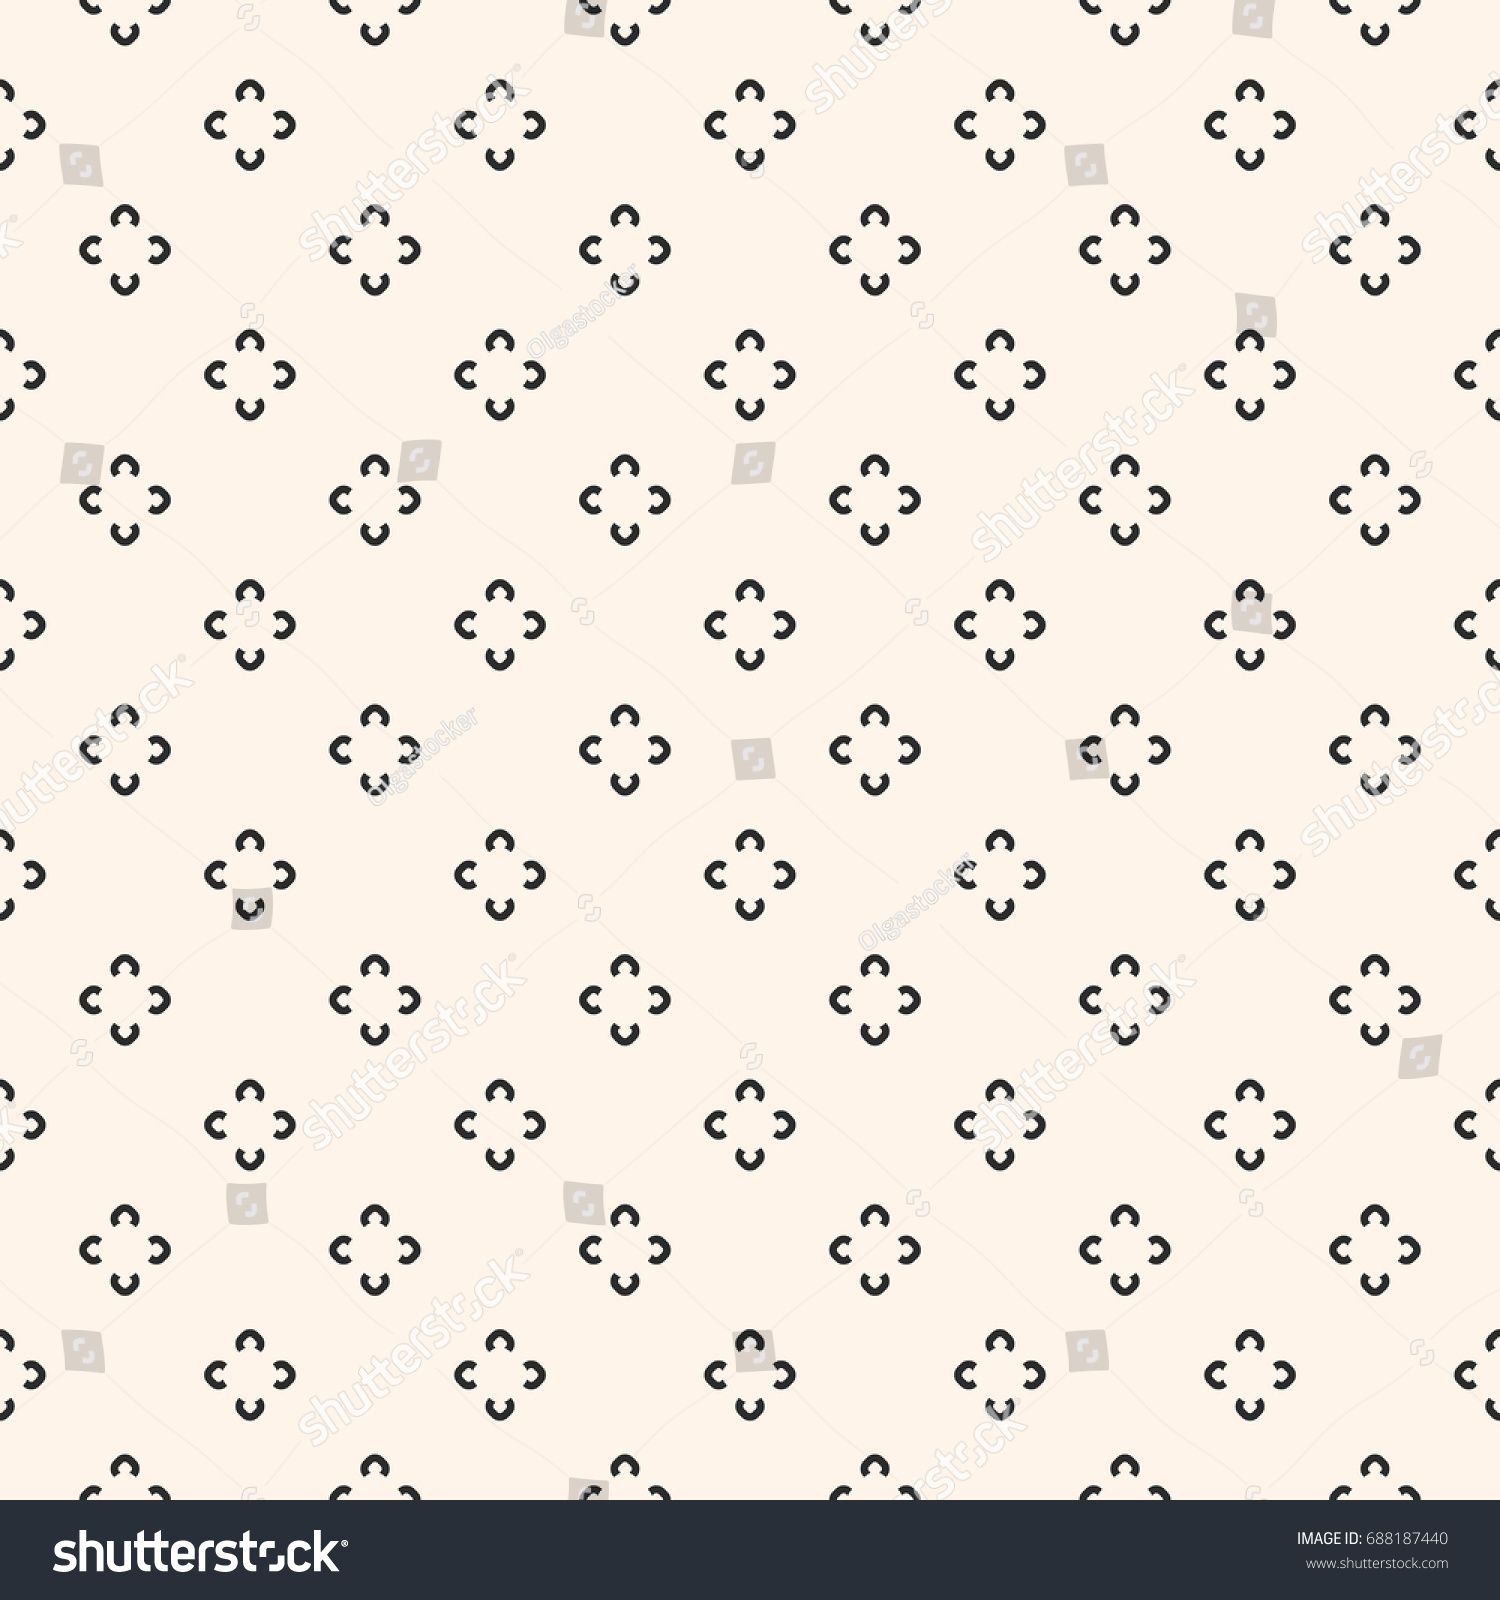 Simple Floral Pattern Vector Minimalist Seamless Texture With